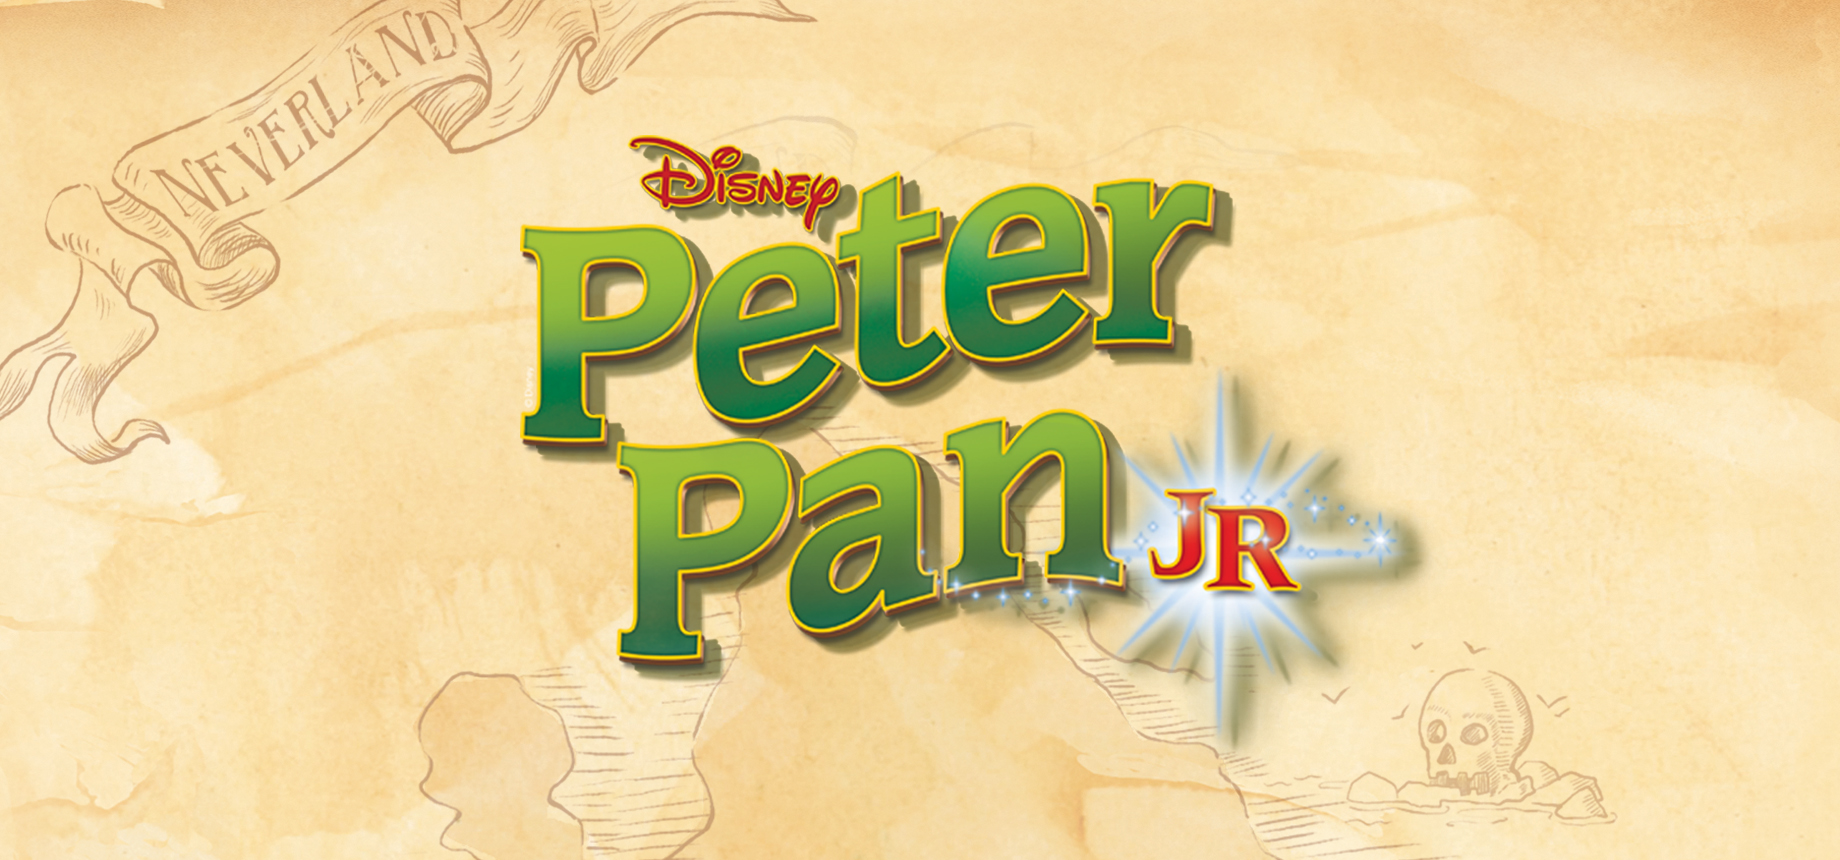 Animated Pictures That Move Disney's Peter Pan JR....